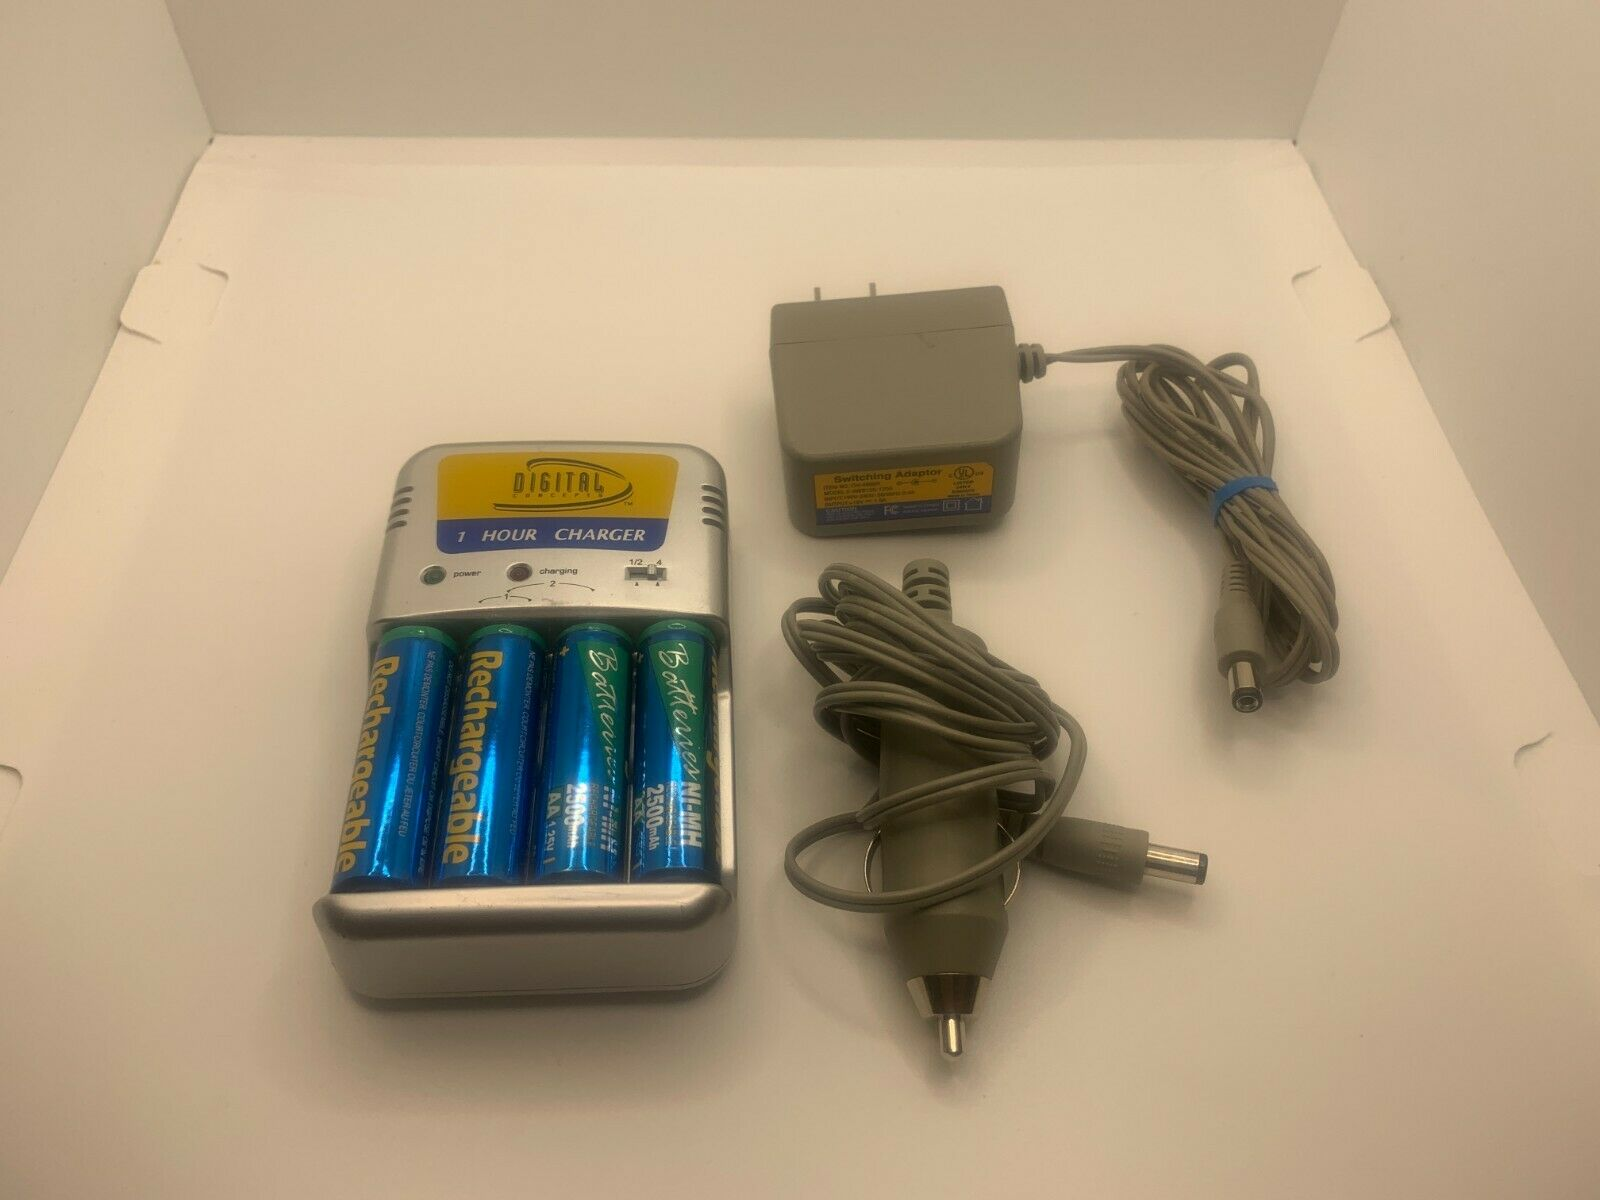 Digital Concepts 1 Hour Charger 4 AA and 2 AAA with Car Adapter